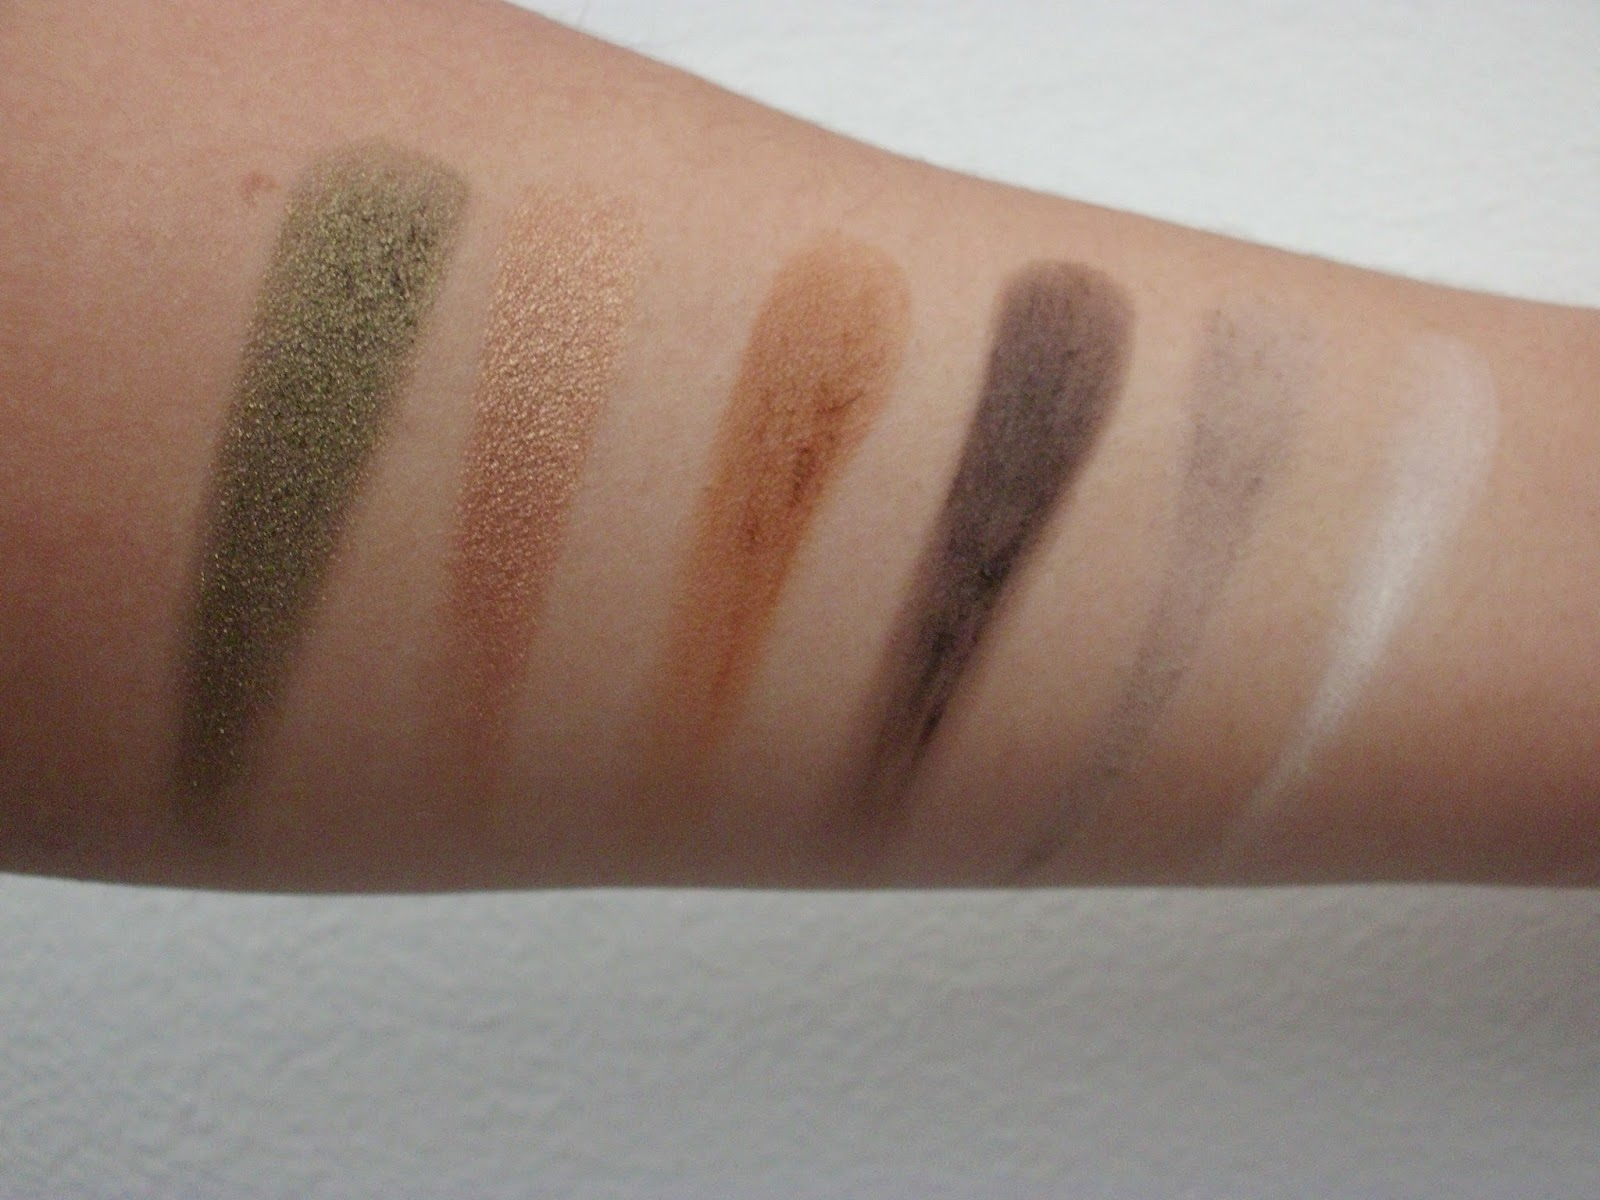 Nabla Cosmetics, Camelot, Antique White, Caramel, Glitz, Fossil, ExtraVirgin, Liberty Six, Review, Swatch